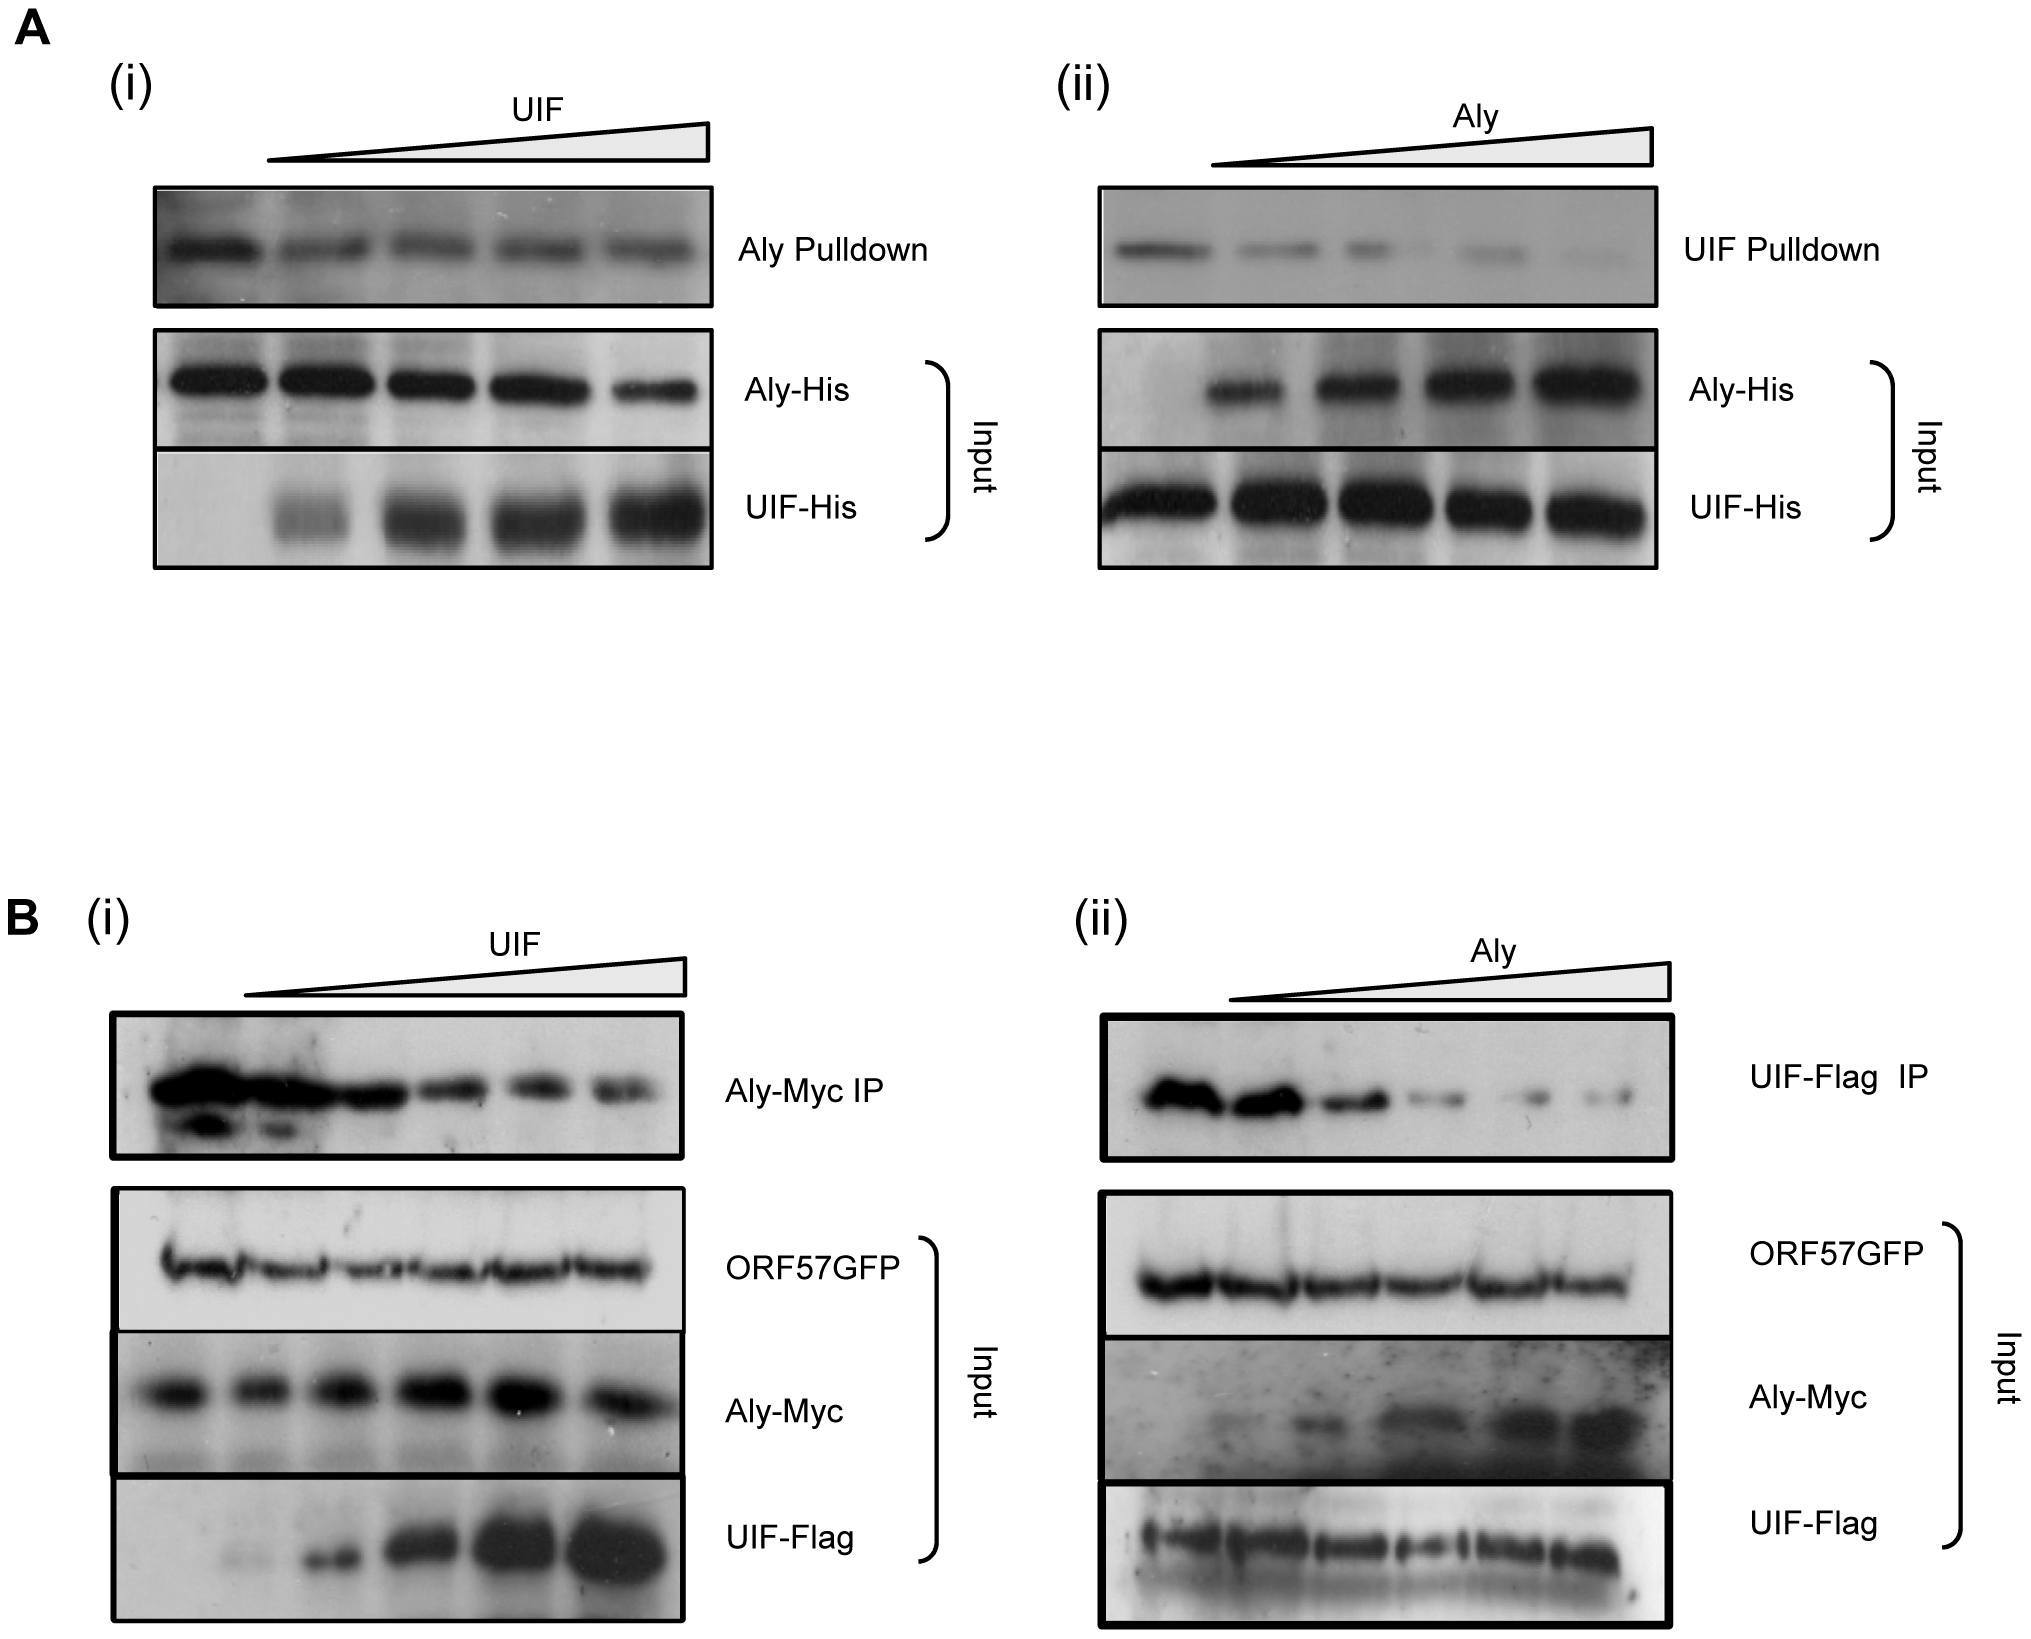 KSHV ORF57 may preferentially bind Aly over UIF.